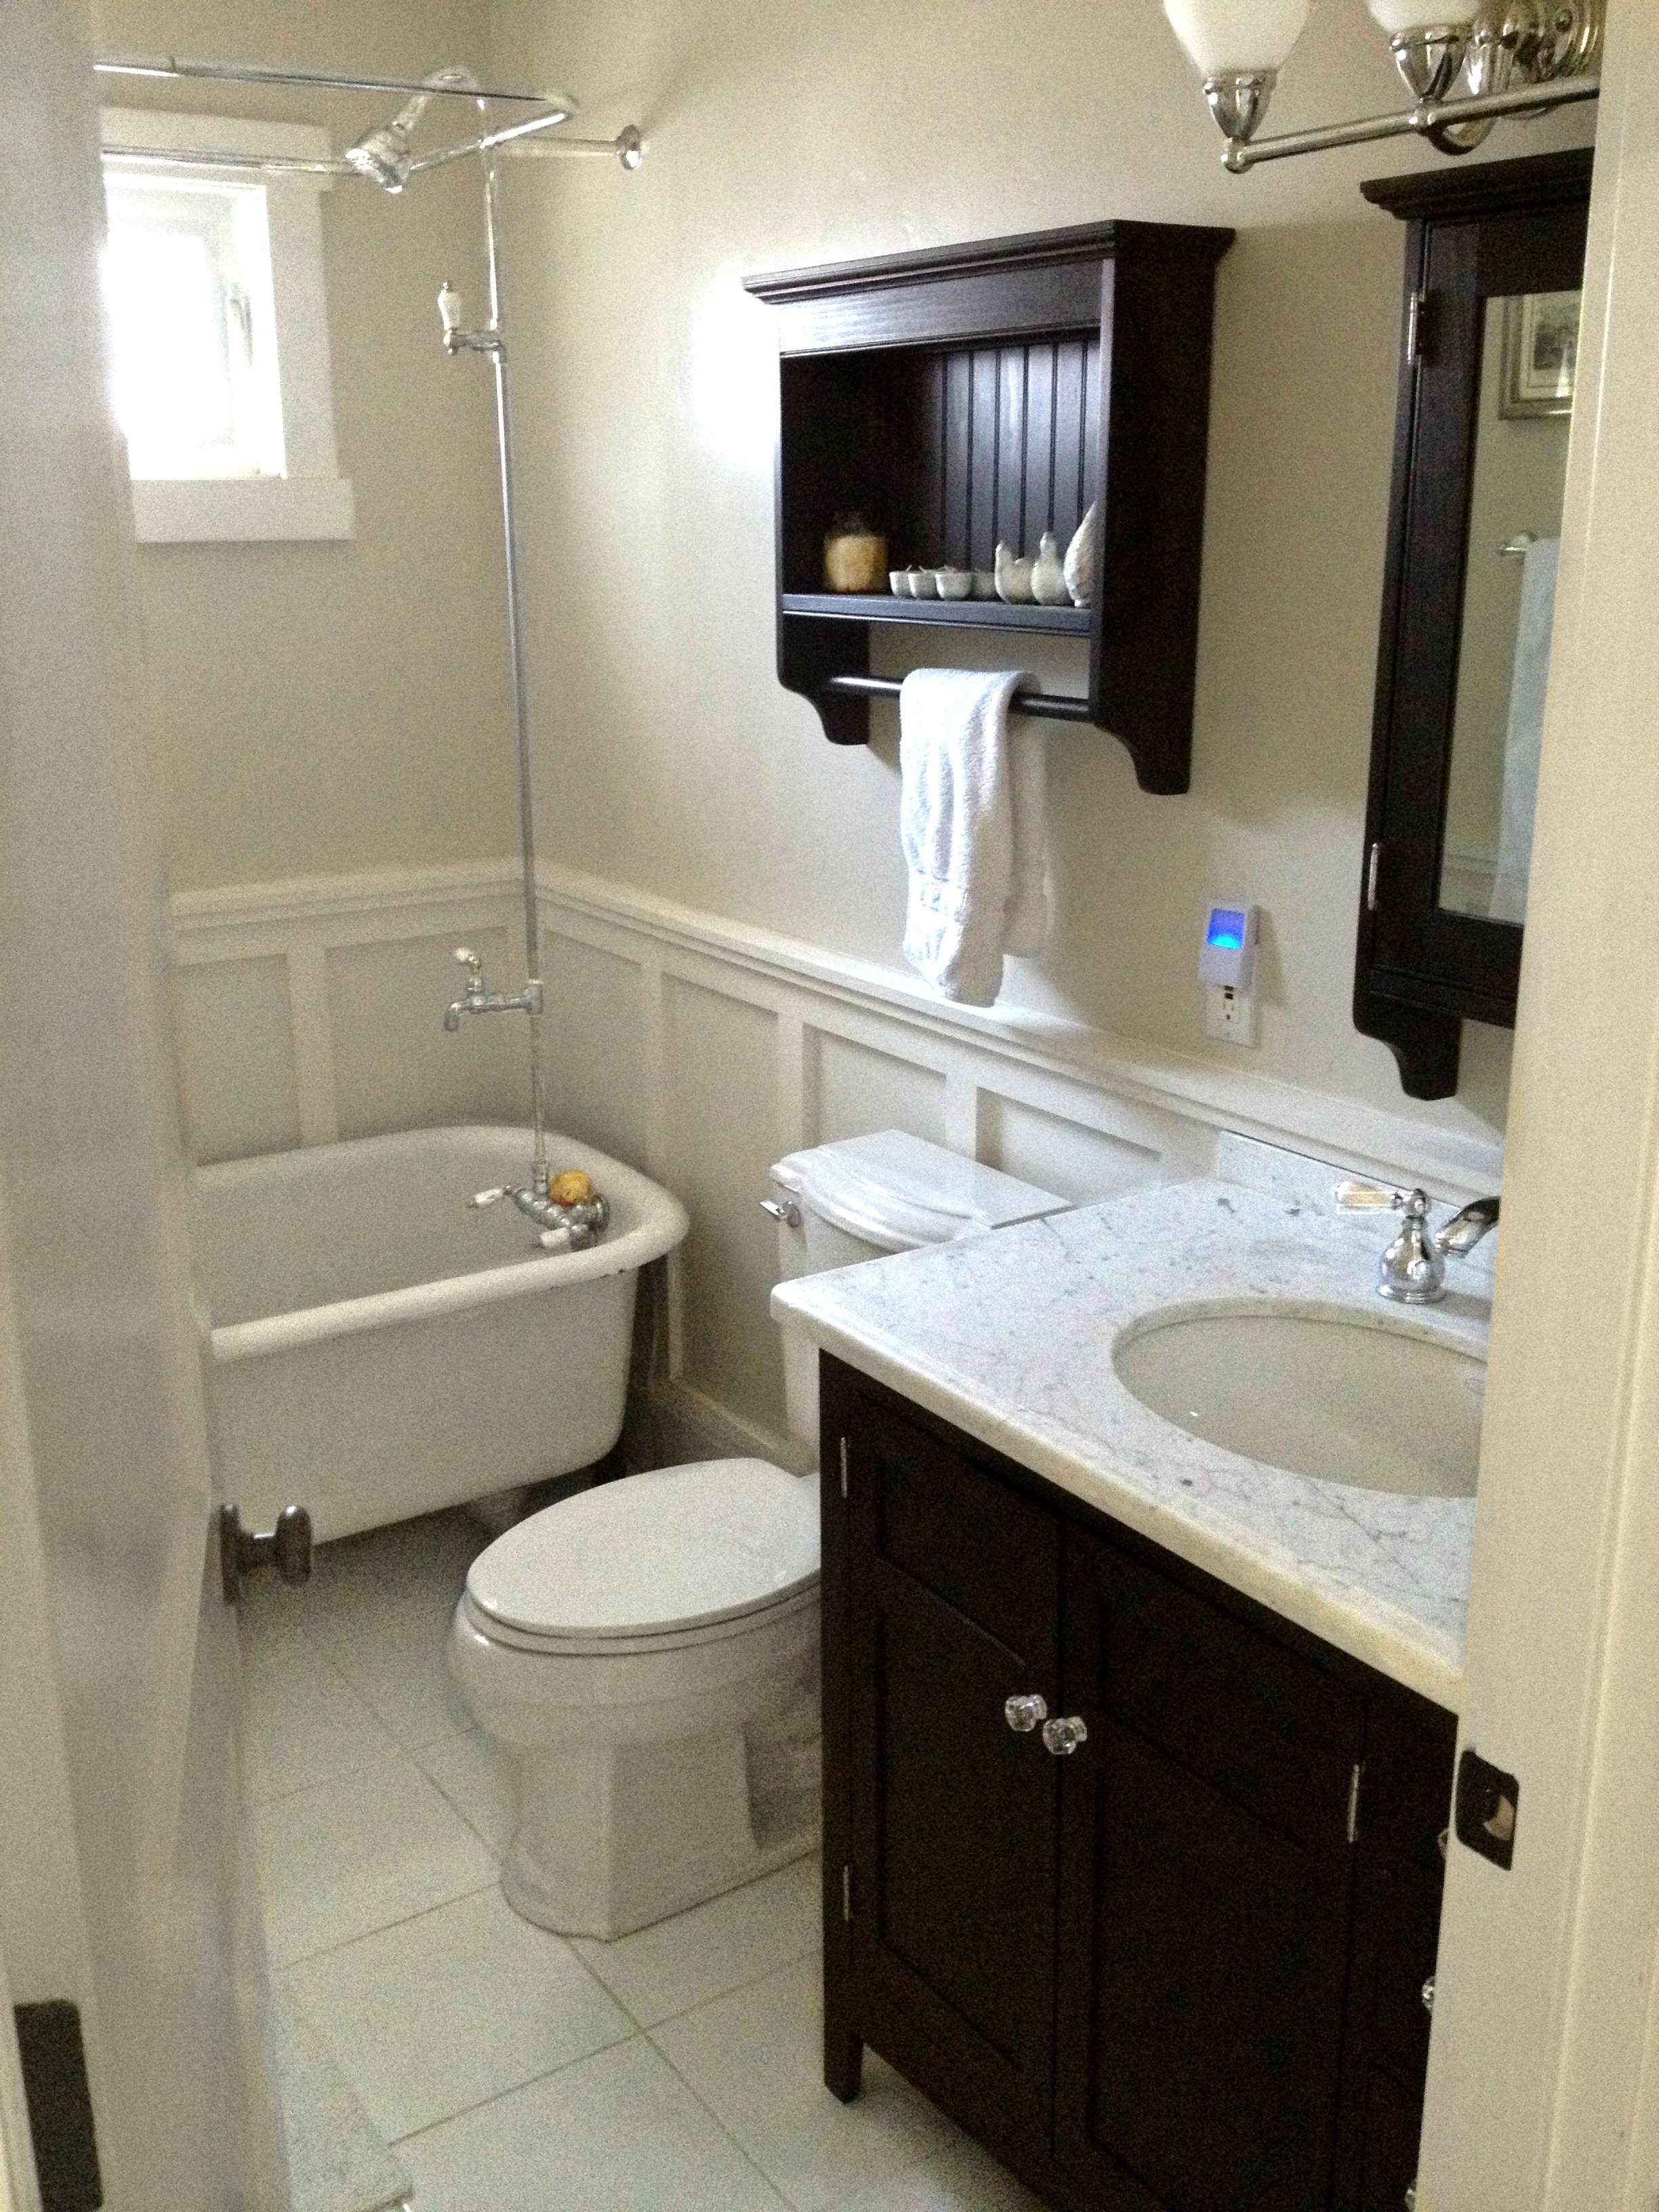 Bathroom Remodel -San Jose, CA Old world charm is still alive ... on bathroom vanities san jose, bathroom wall storage ideas, bathroom renovations raleigh nc,